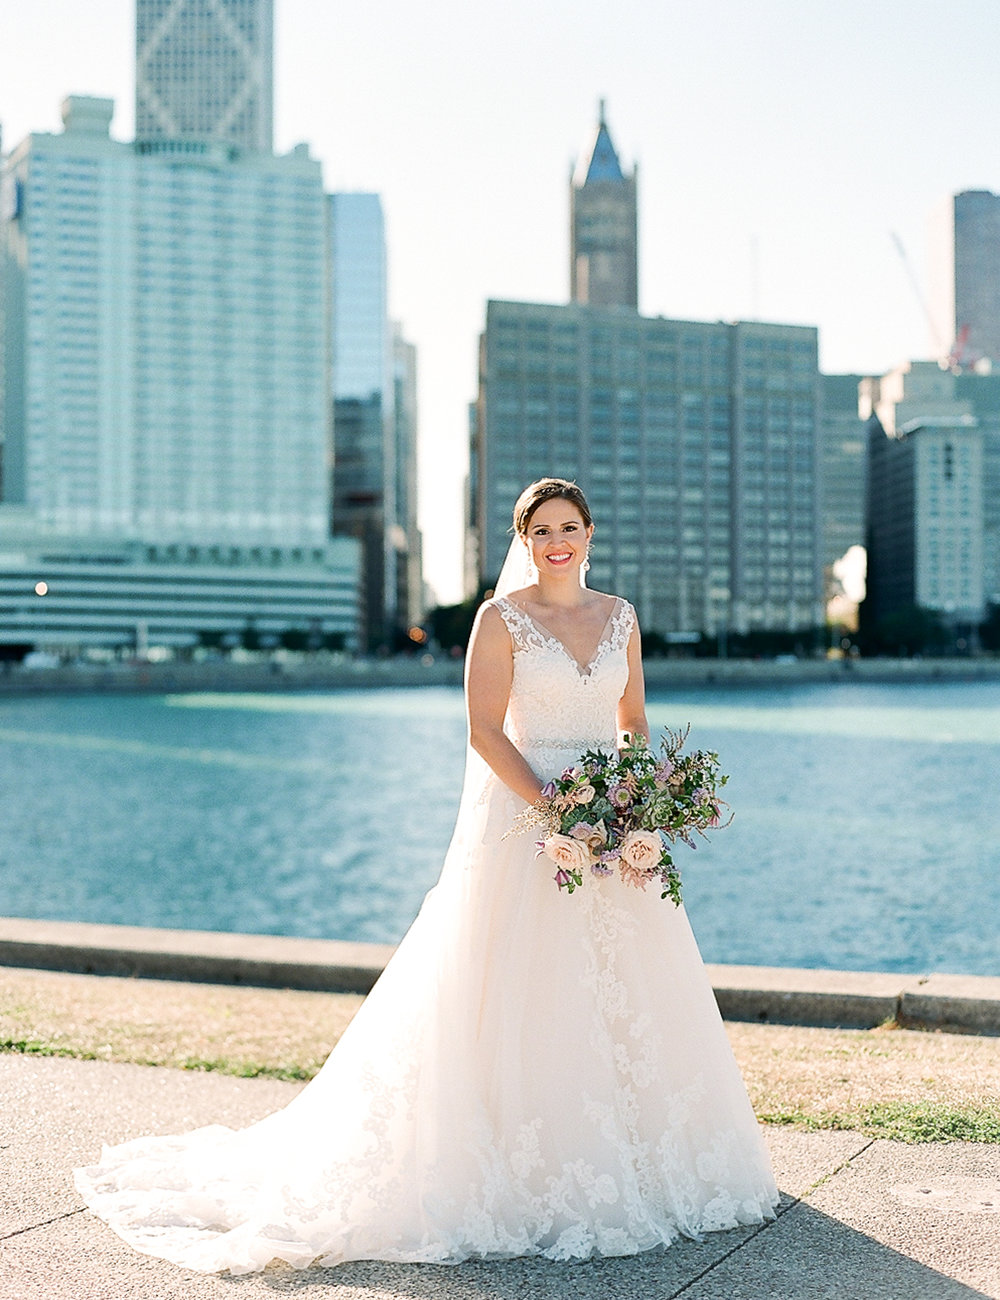 Bonphotage Chicago Fine Art Wedding Photography - Morgan's on Fulton